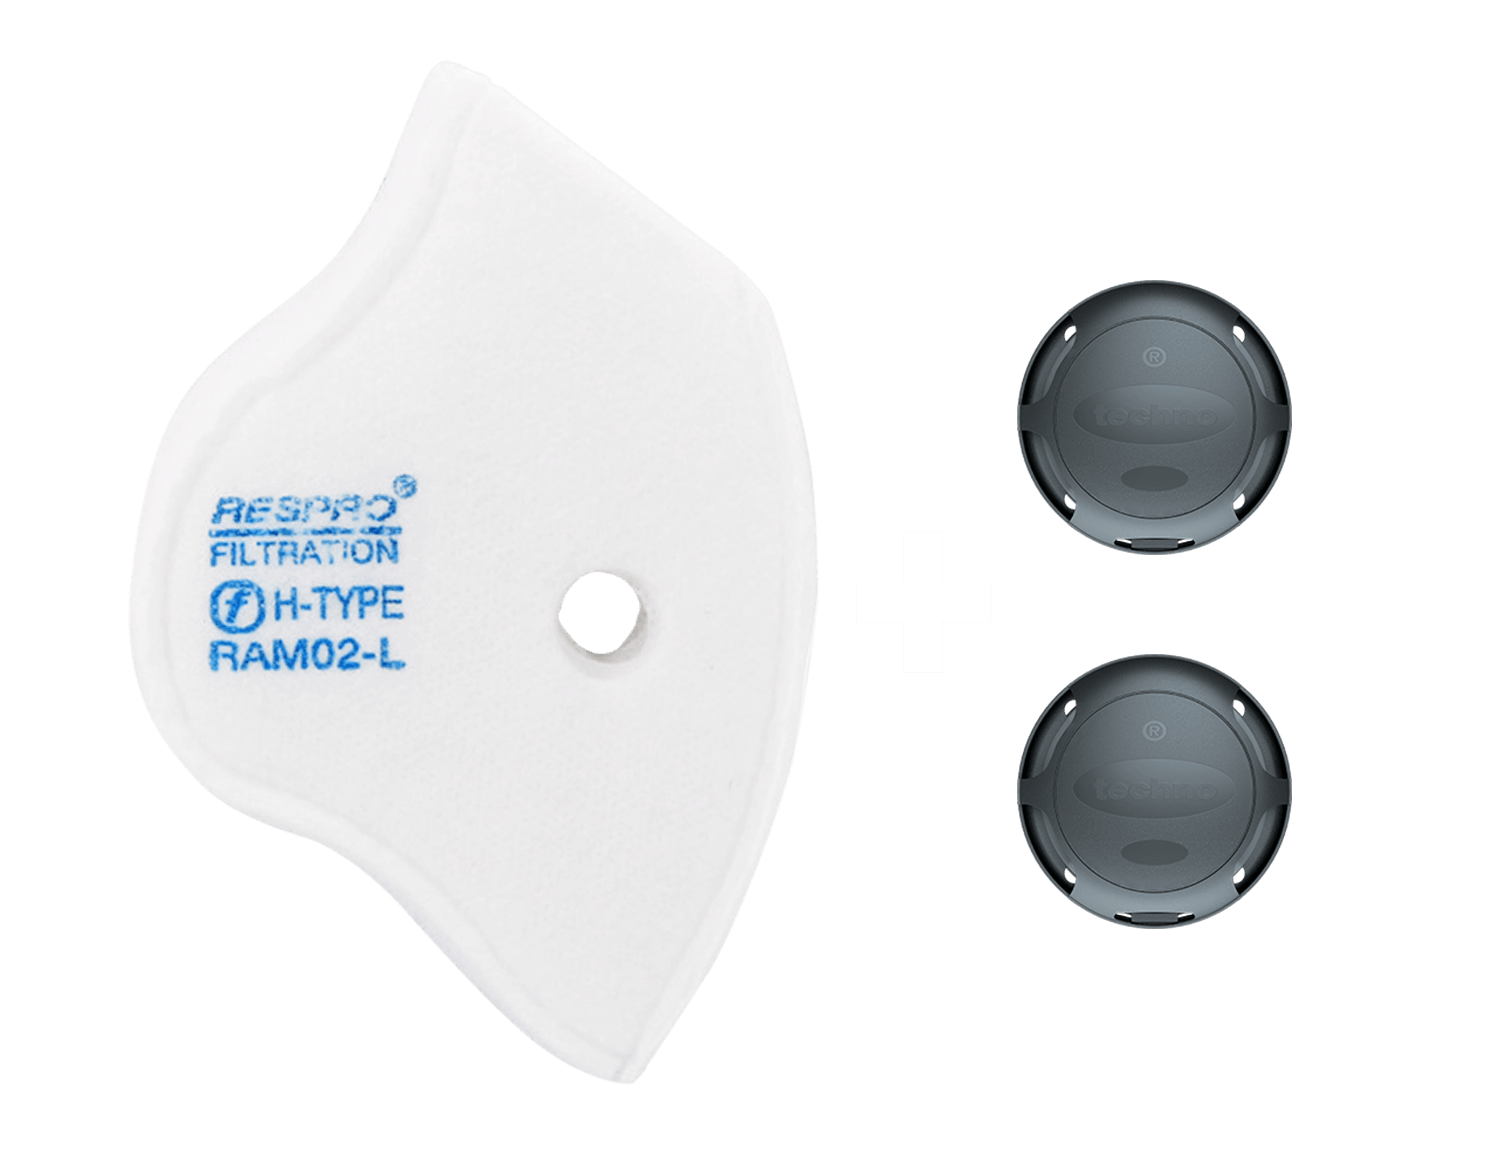 FB-1™ Particle filter with Valves - Product